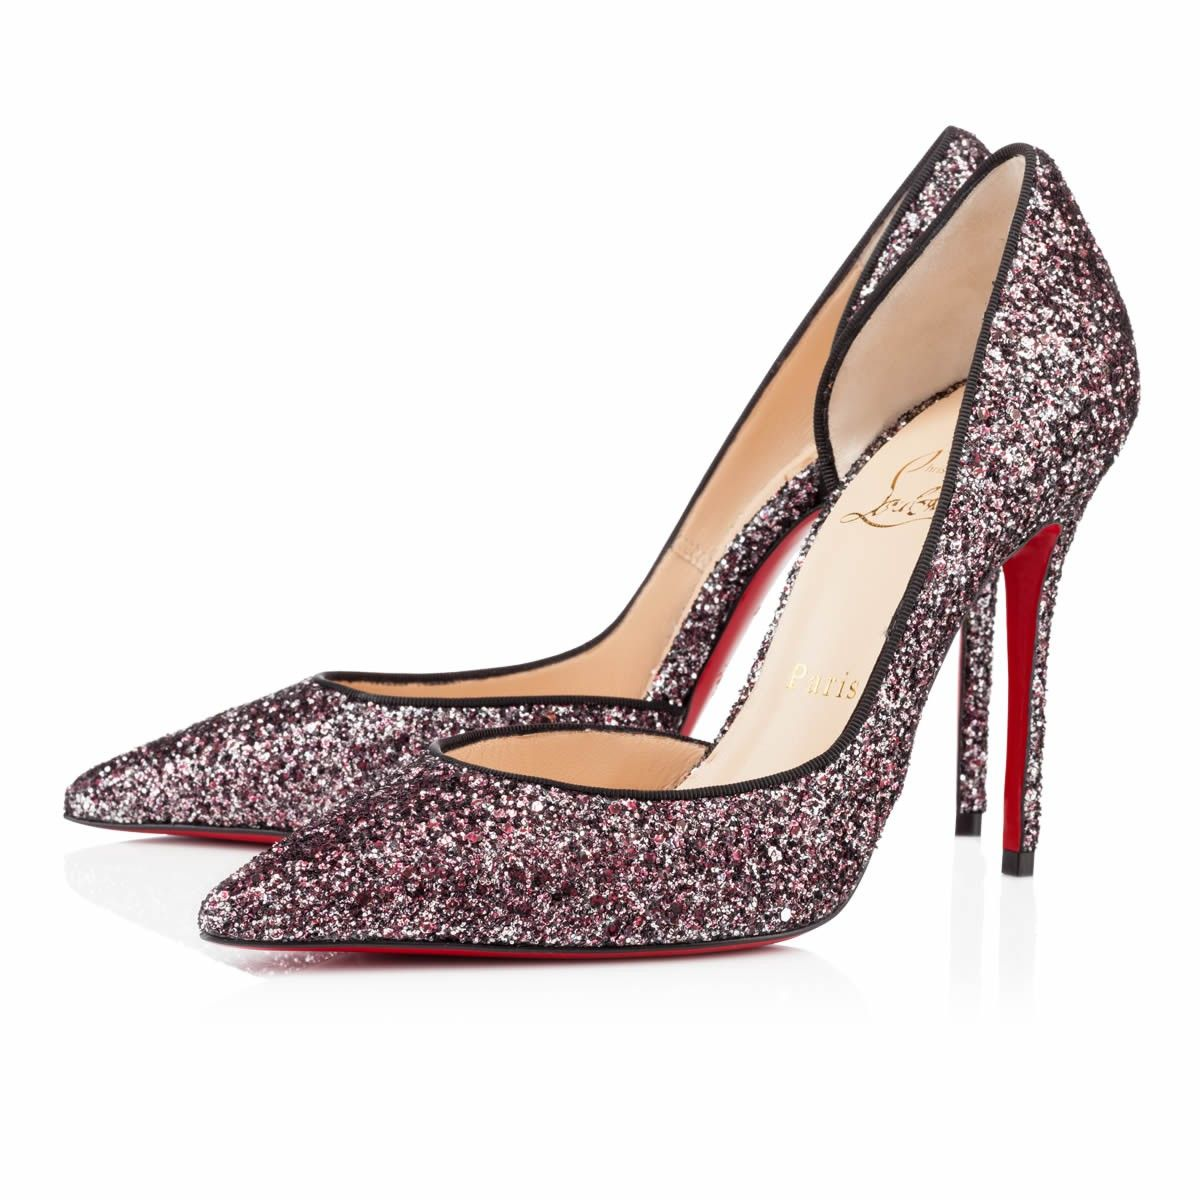 75bd721309a Christian Louboutin Iriza 100mm Special Occasion Rose Antique Outlet Store  Christian Louboutin Heels